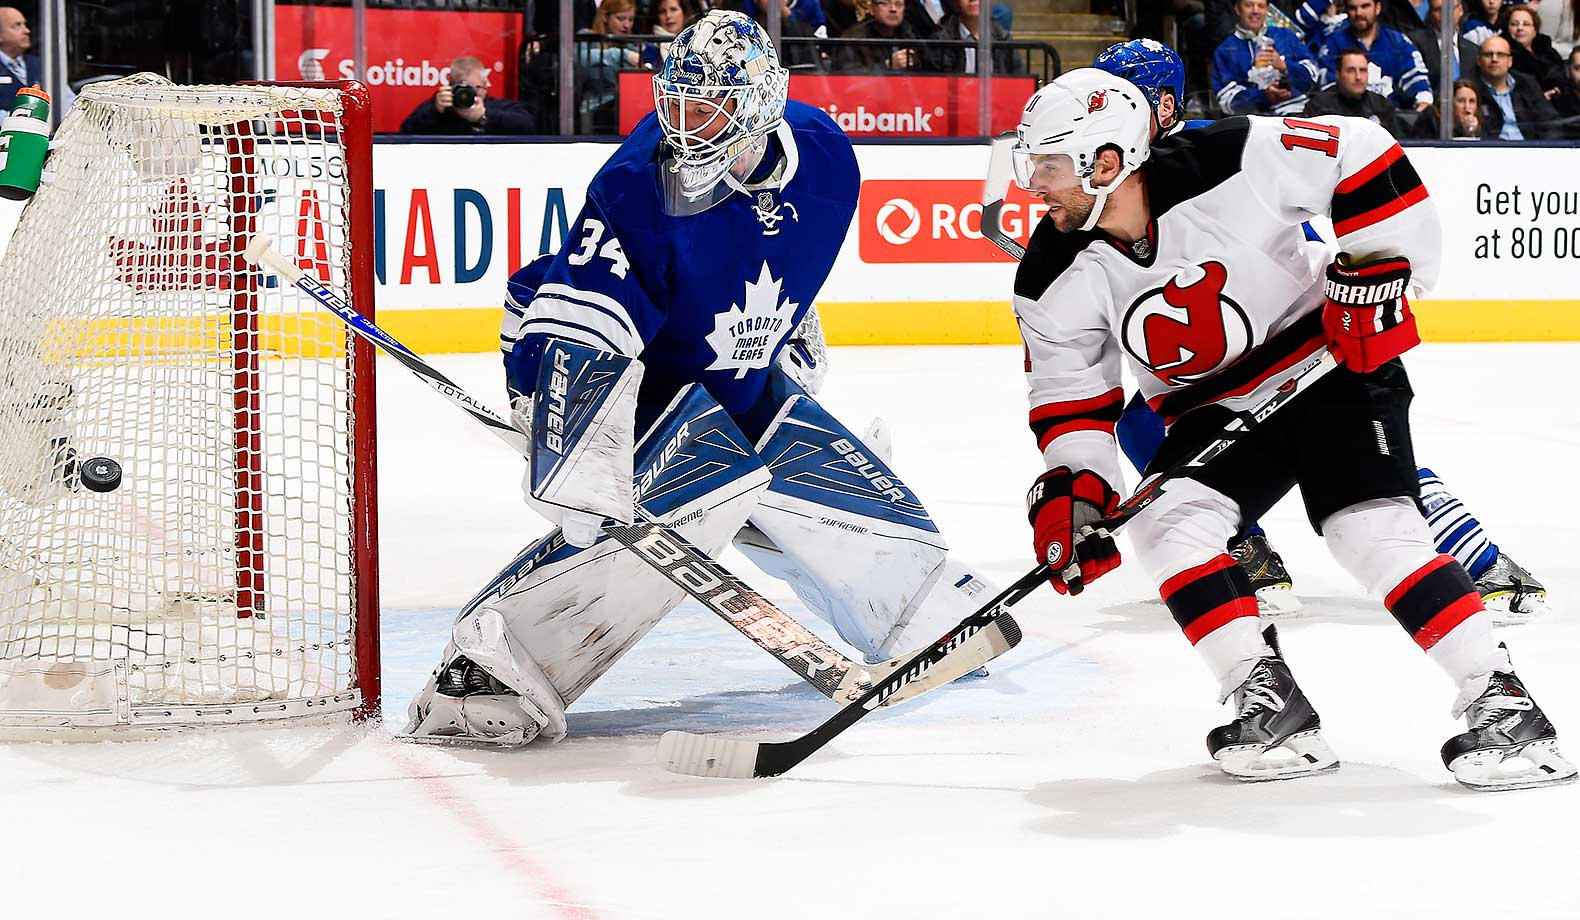 James Reimer of the Toronto Maple Leafs kicks a shot wide past Stephen Gionta of the New Jersey Devils at Air Canada Centre in Toronto.